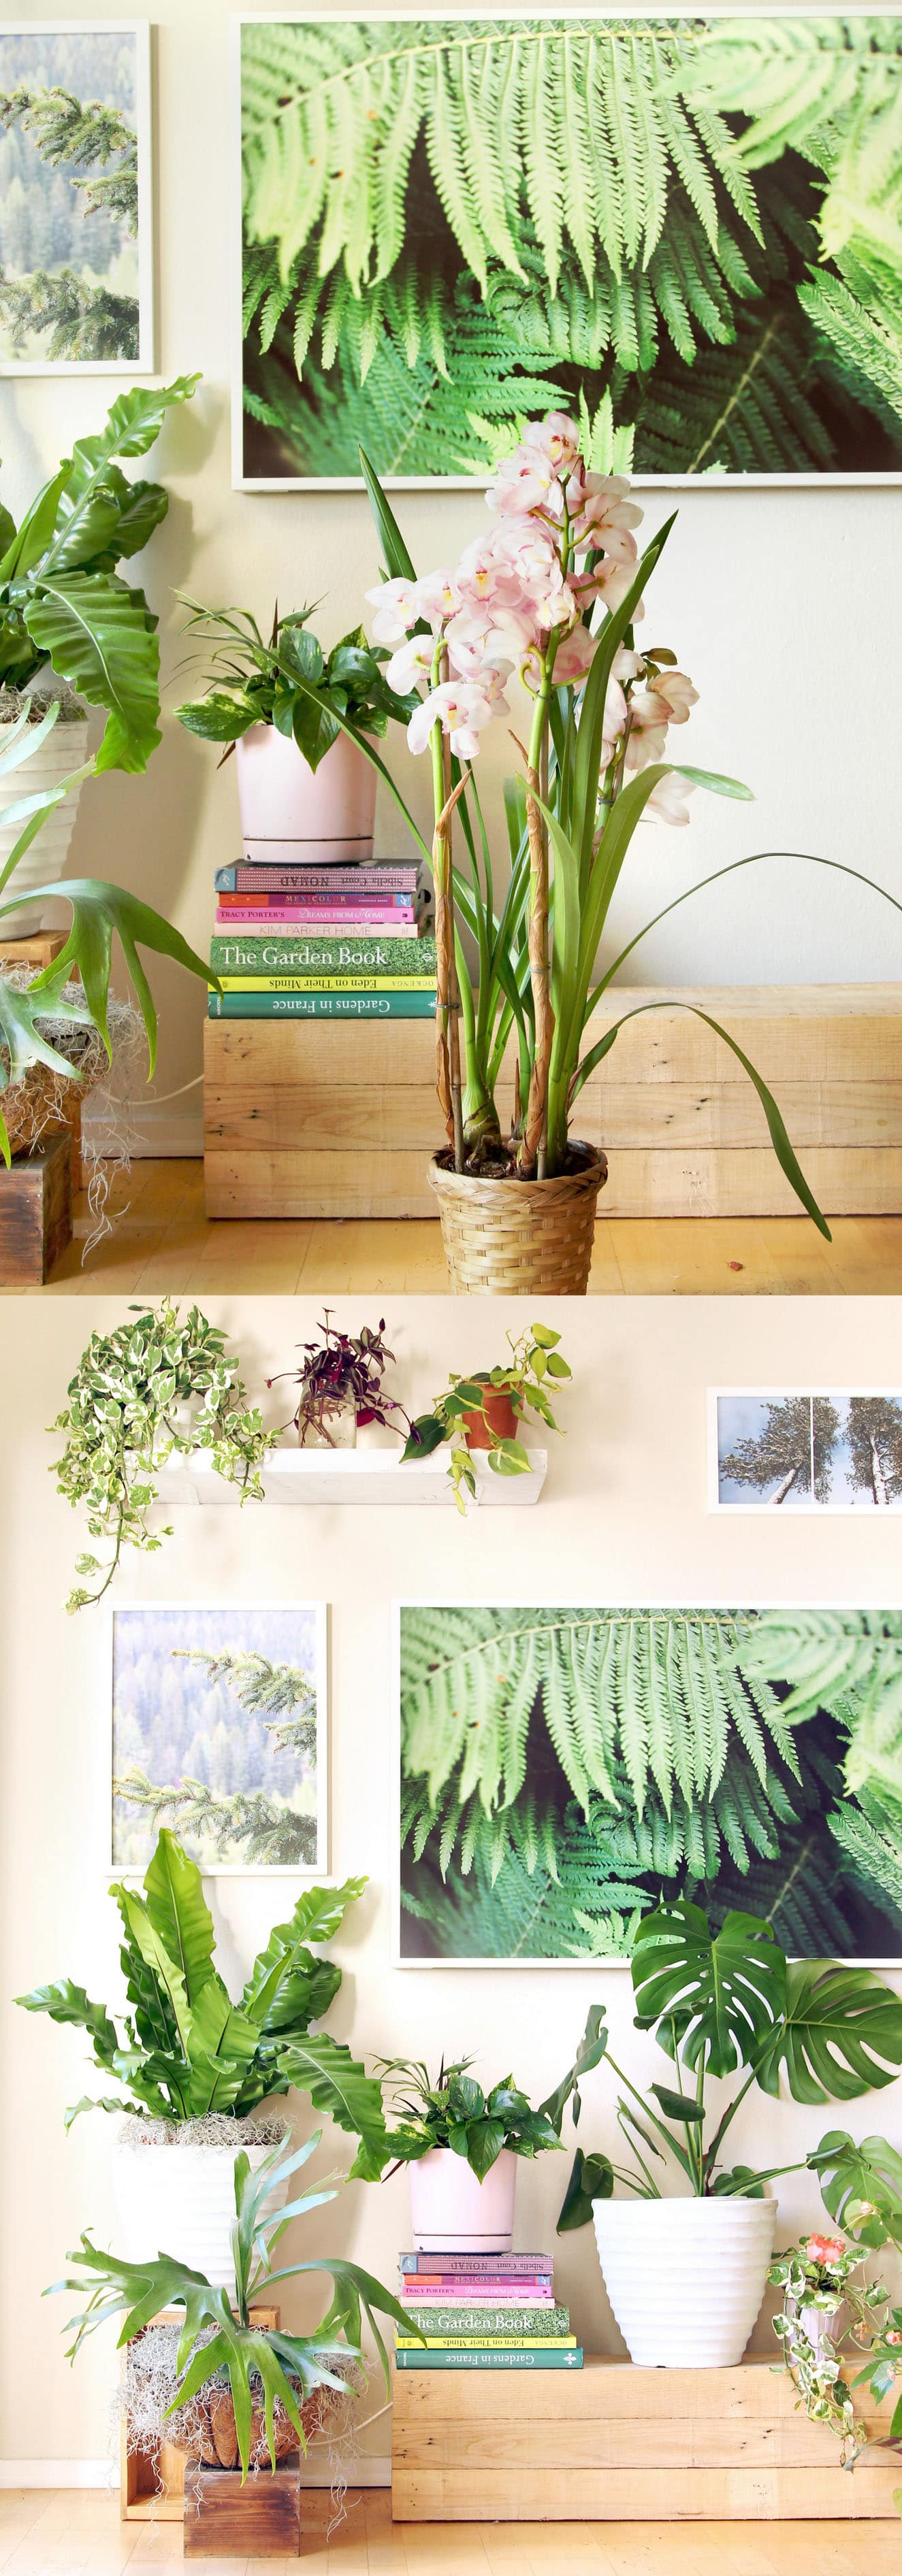 18 Most Beautiful Indoor Plants ( & 5 Easy Care Tips! ) - A Piece Of Flowers House Plants on flower gardening, flower fertilizers, flower cooking, flower eggs, flower house florist, flower seedlings, flower greenhouse, red tropical plants, flower animals, flower floral arrangements, flower perennials, flower tools, flower home, flower house garden, flower bonsai, flower soil, flower flowers, flower succulents, flower nurseries, flower insects,